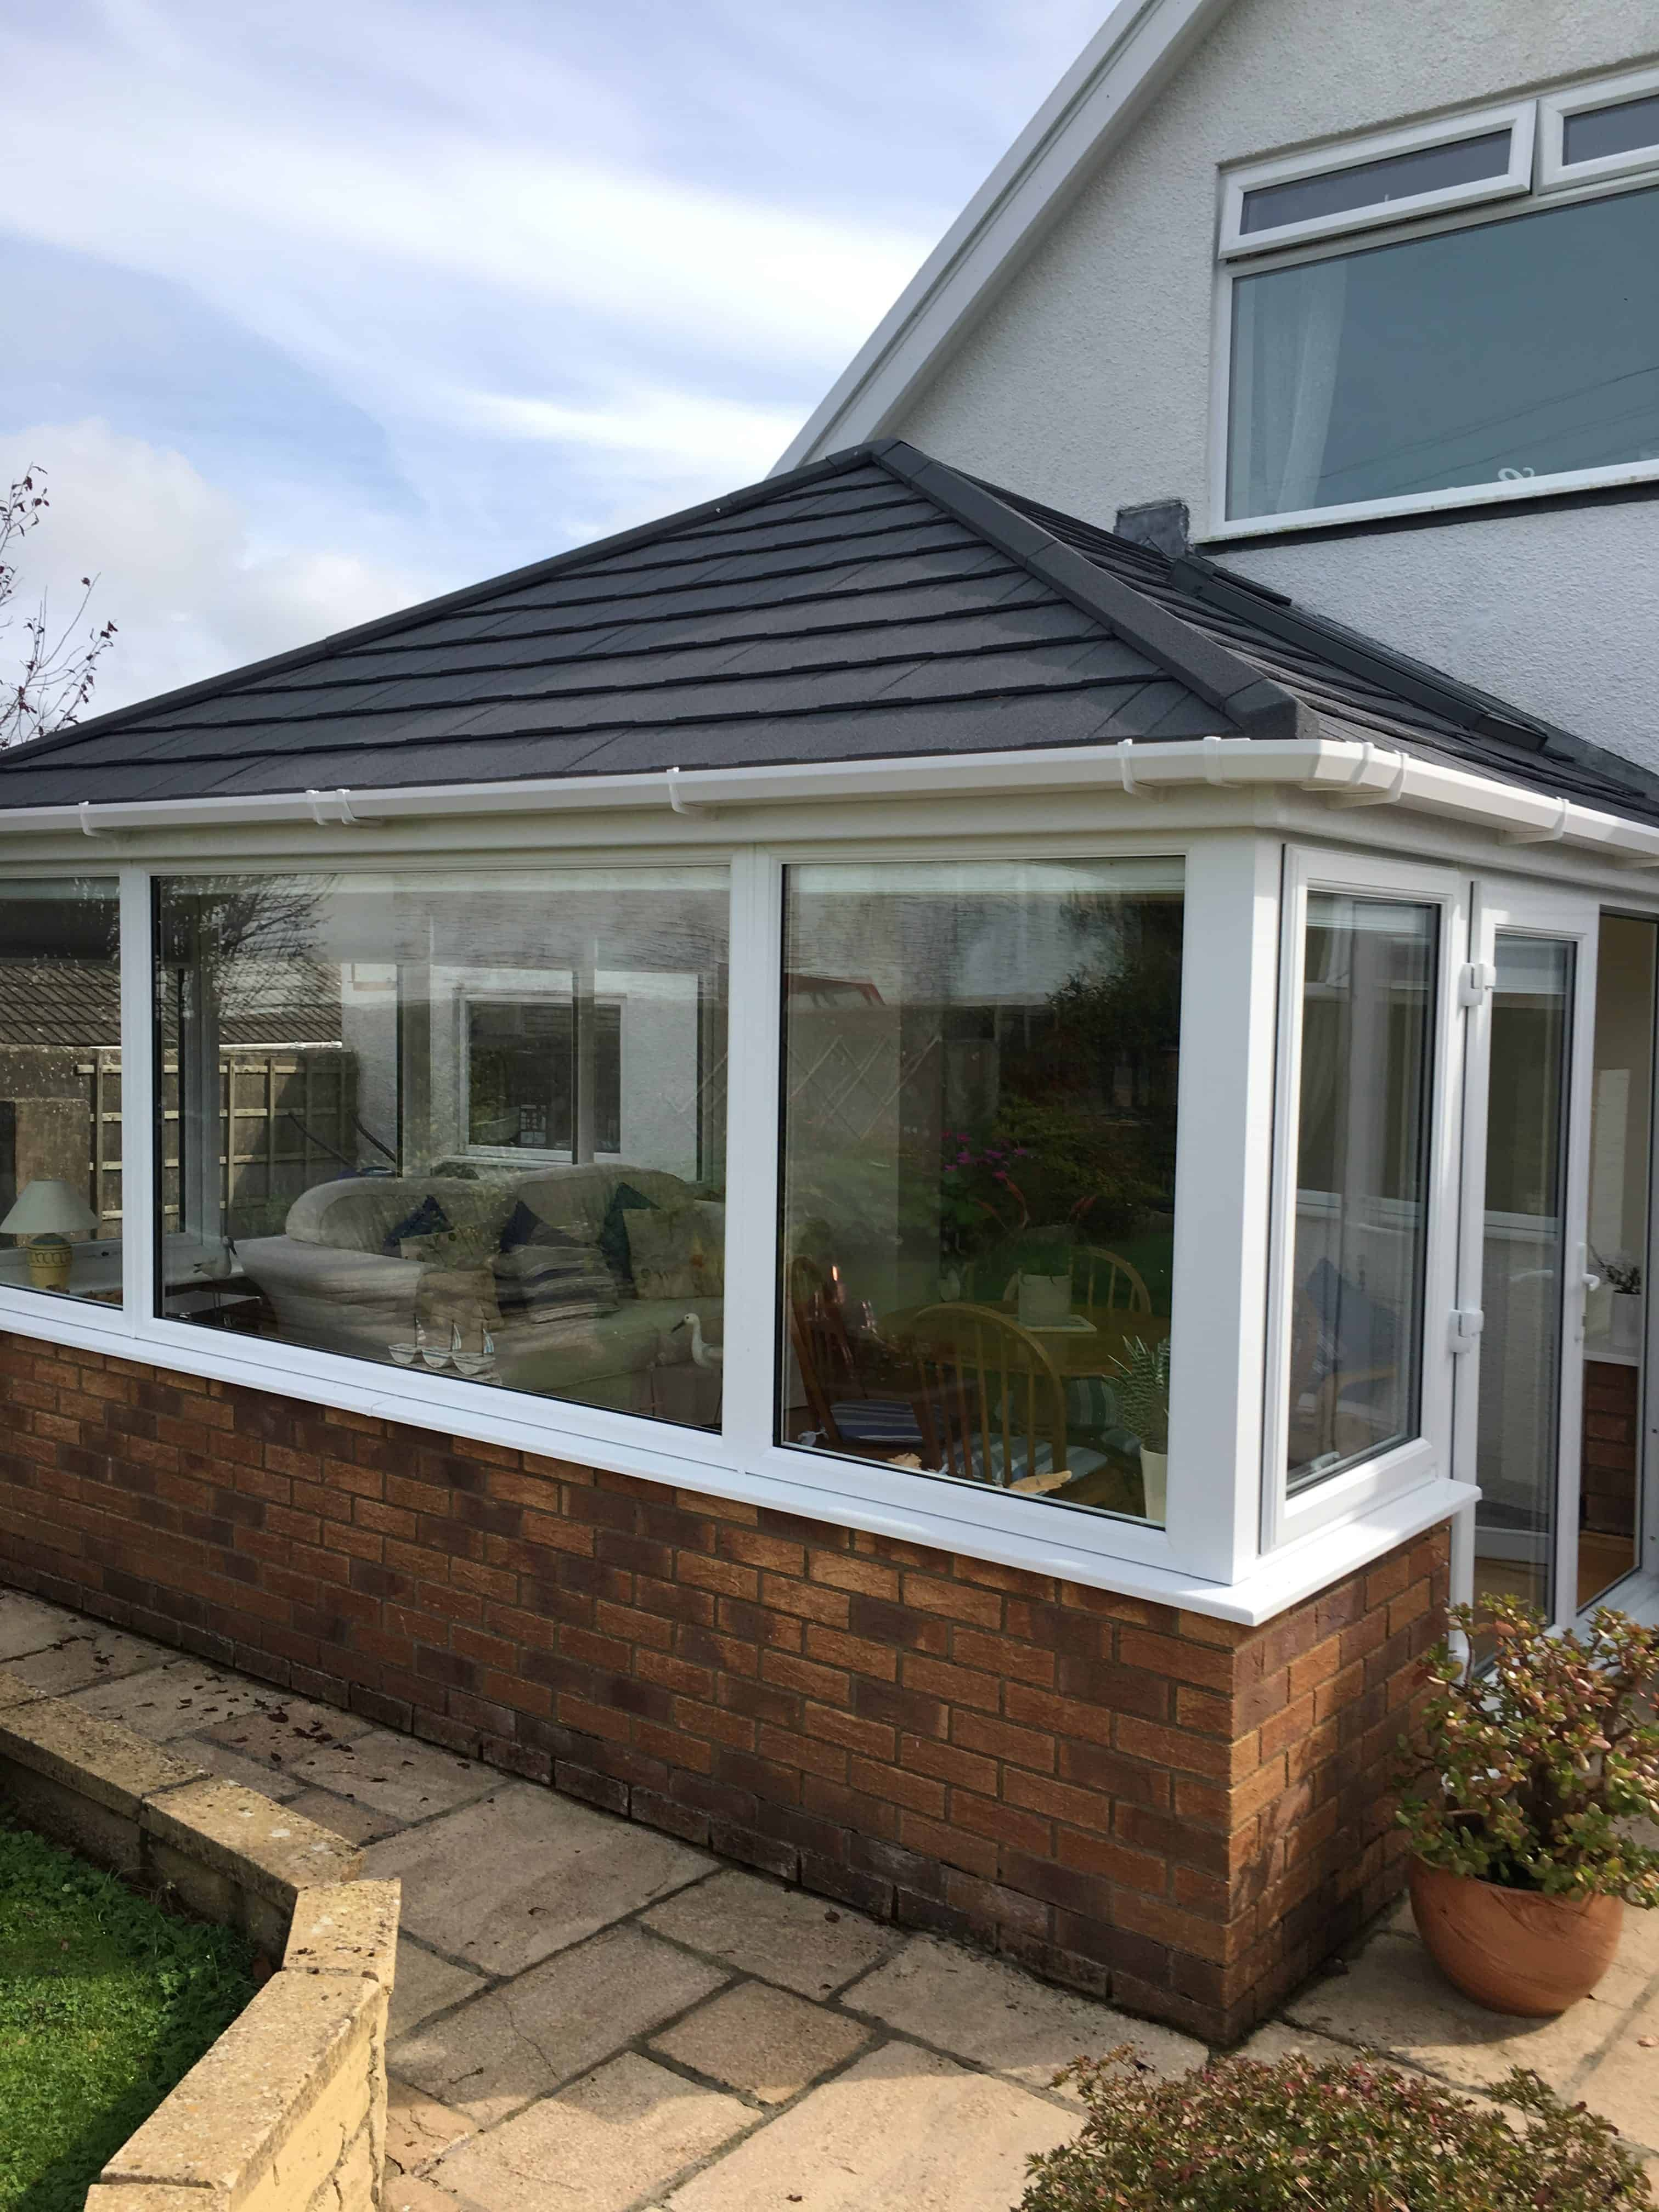 Edwardian Tiled Roof Conservatory Conversion Leka Systems Tiled Conservatory Roof Porch Design Patio Makeover